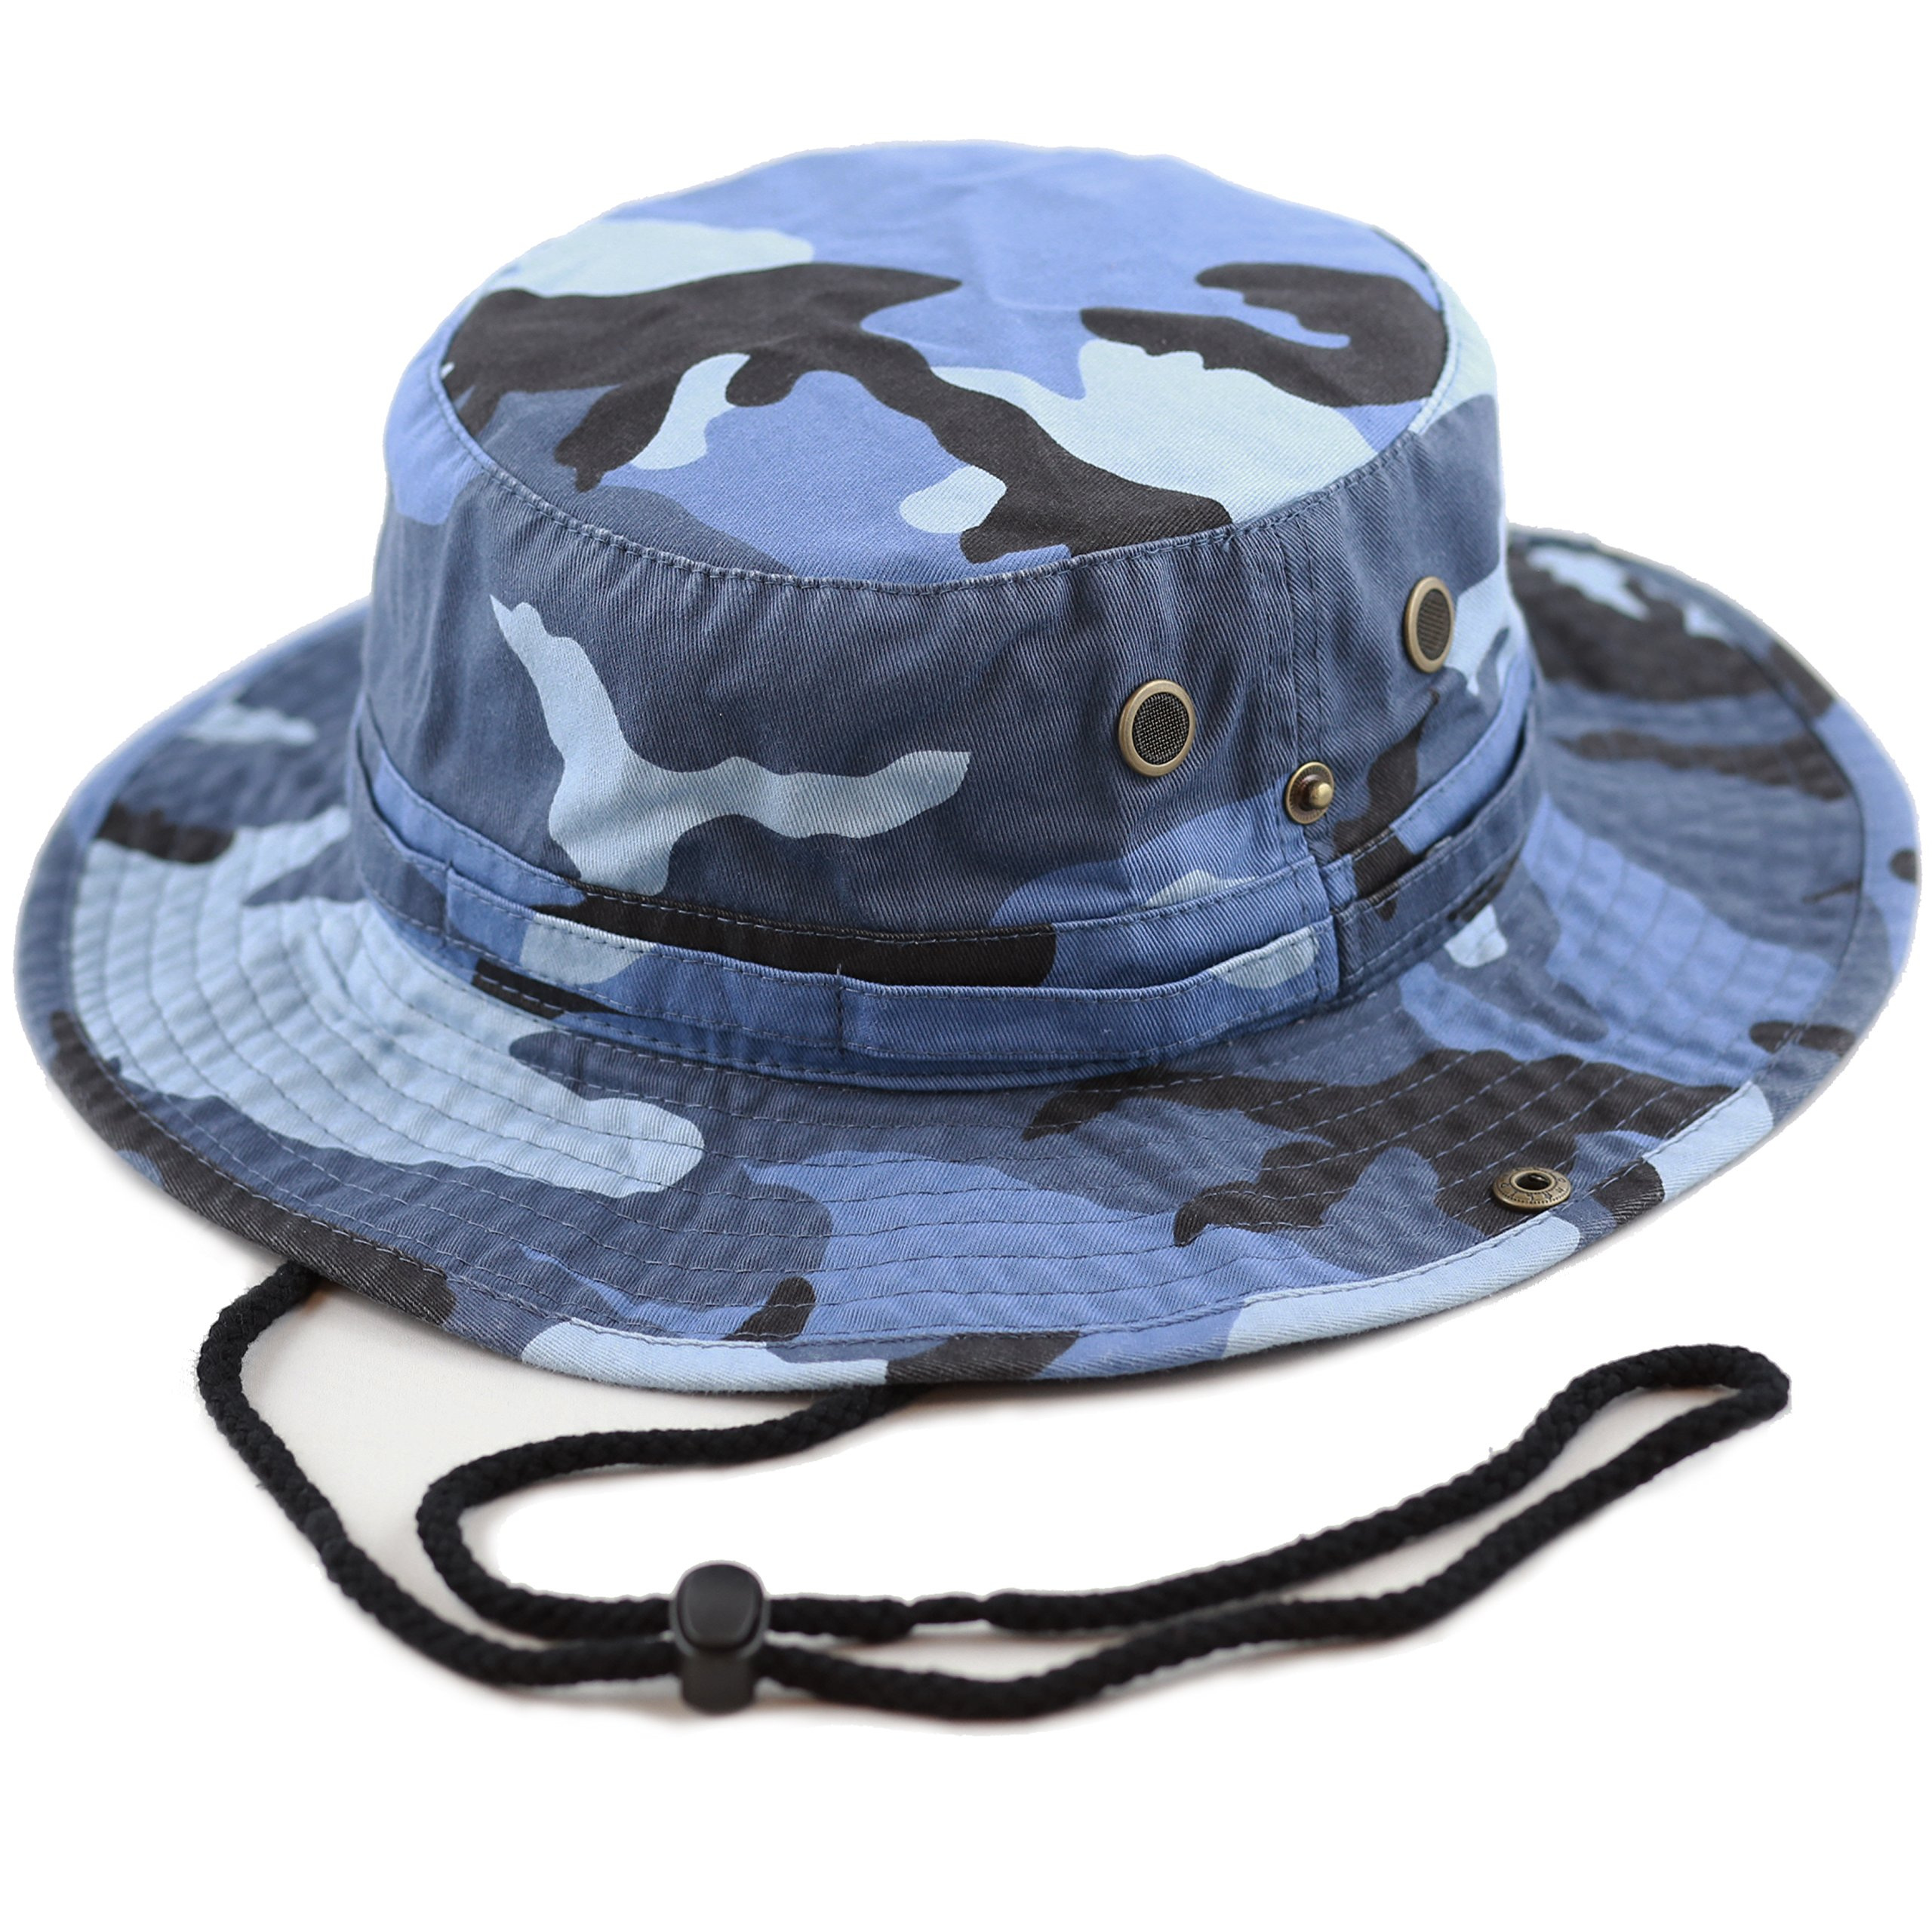 Unisex Summer Outdoor Packable Camouflage Bucket Hat (L/XL, Bluesky camo) by THE HAT DEPOT